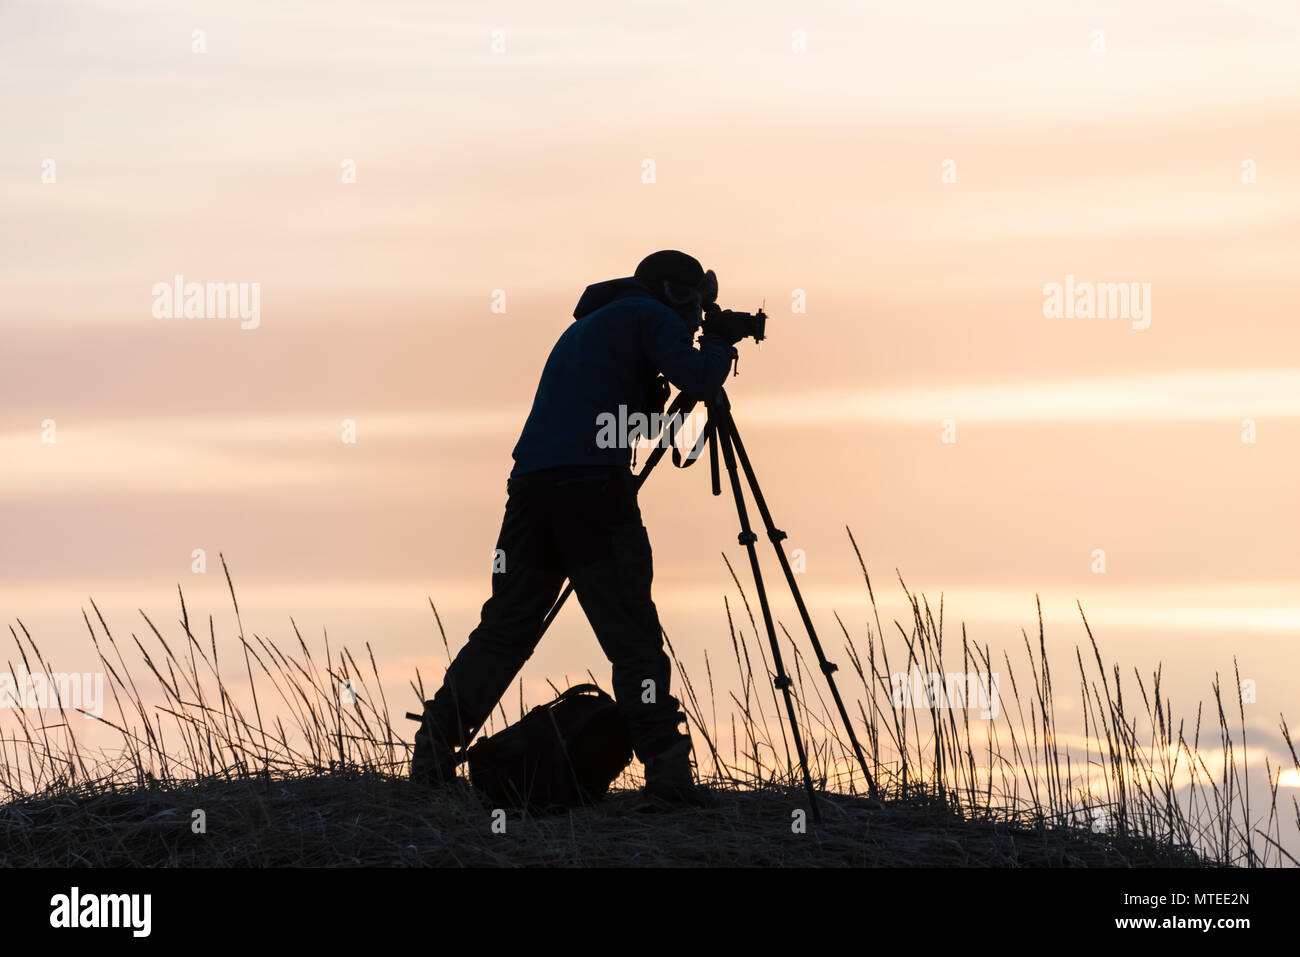 Silhouette of a photographer with tripod, sunset, near Stokksnes, Iceland Stock Photo